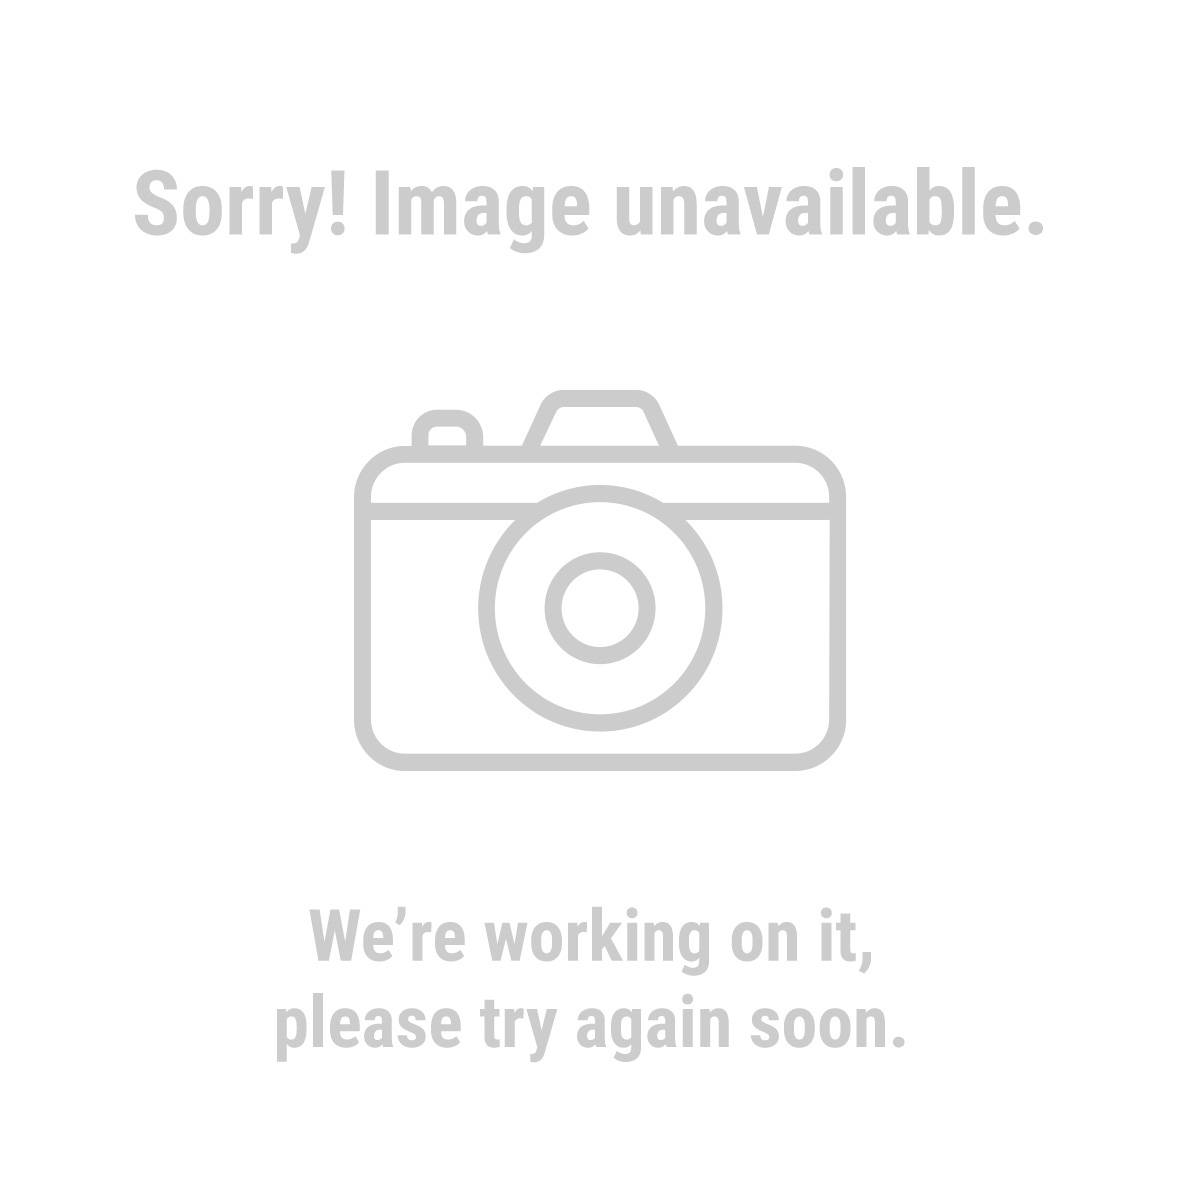 Predator Generators 63082 6500 Peak/5500 Running Watts, 13 HP  (420cc) Generator CARB